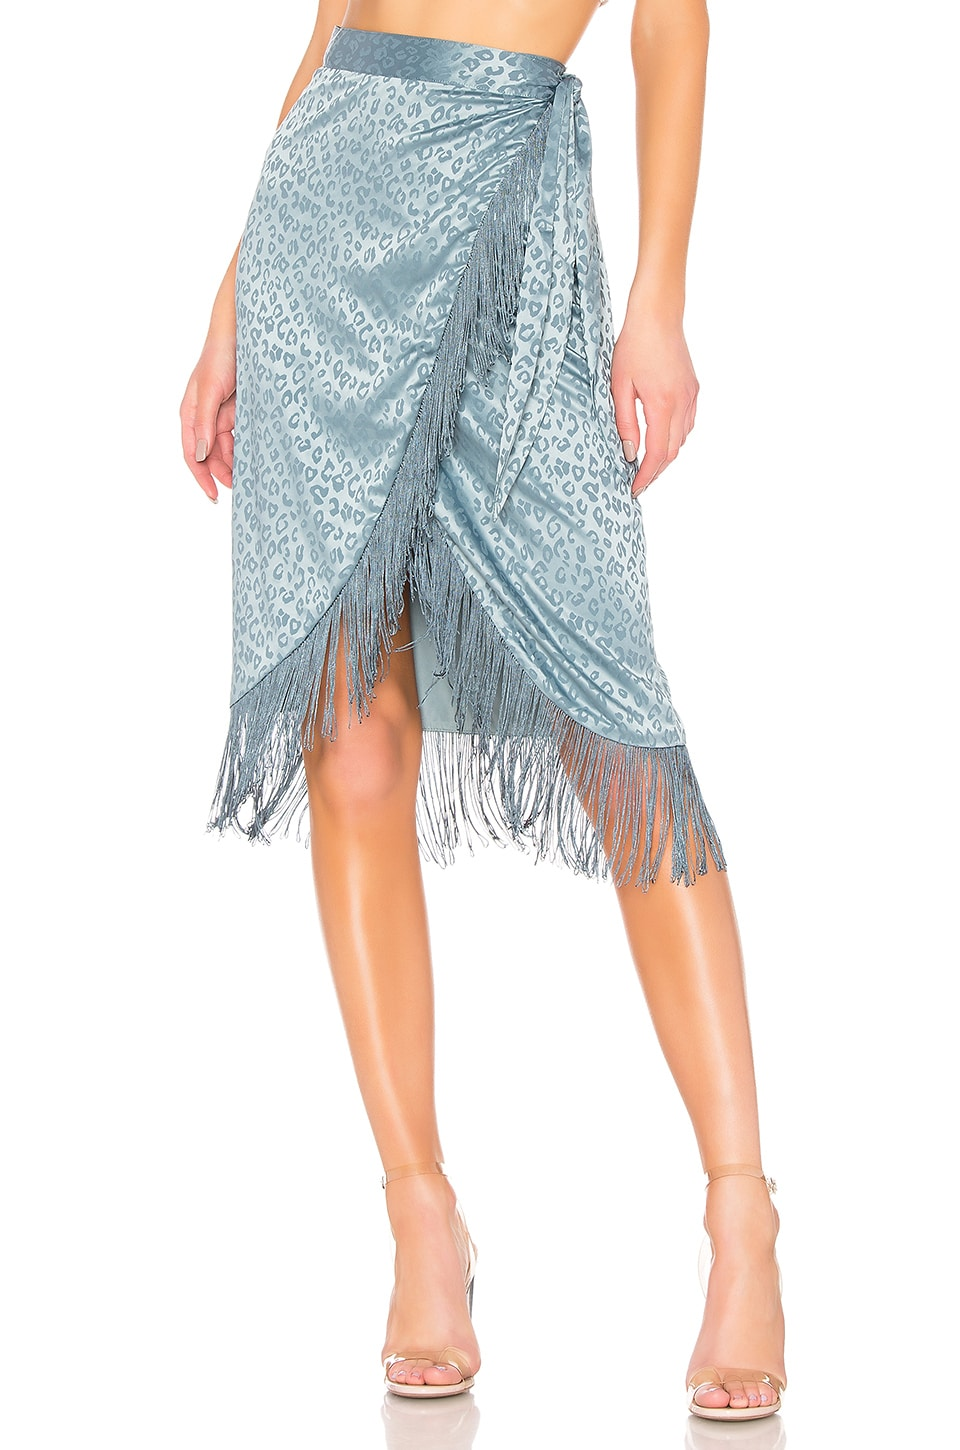 House of Harlow 1960 X REVOLVE Aldo Midi Skirt in Dusty Blue